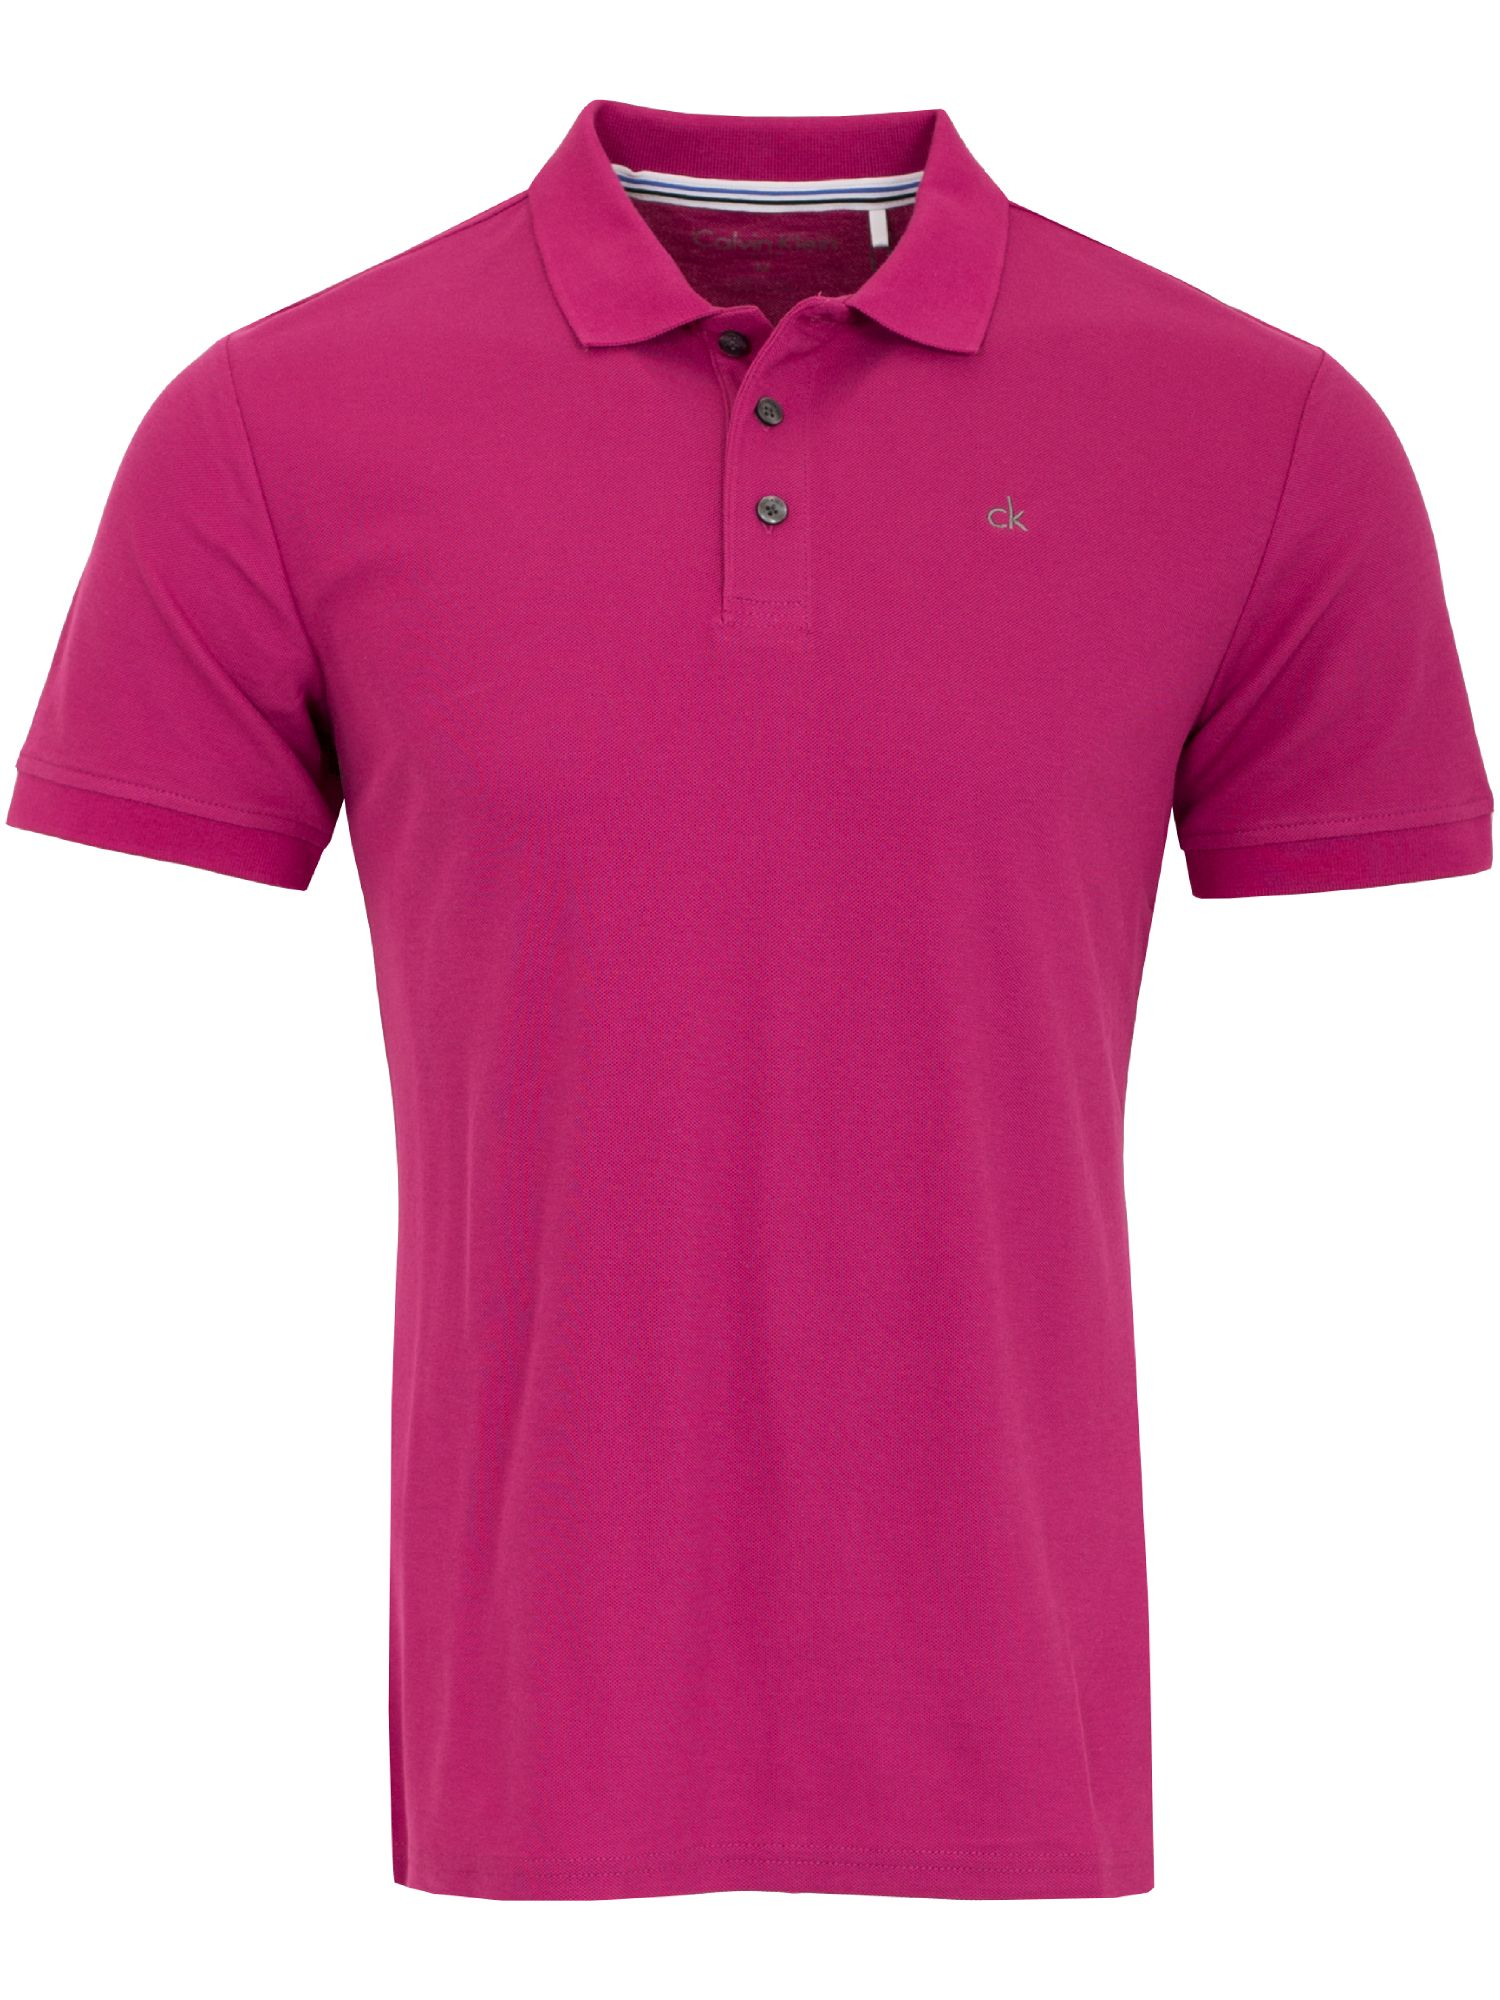 Men's Calvin Klein Golf Midtown Radical Cotton Polo, Raspberry